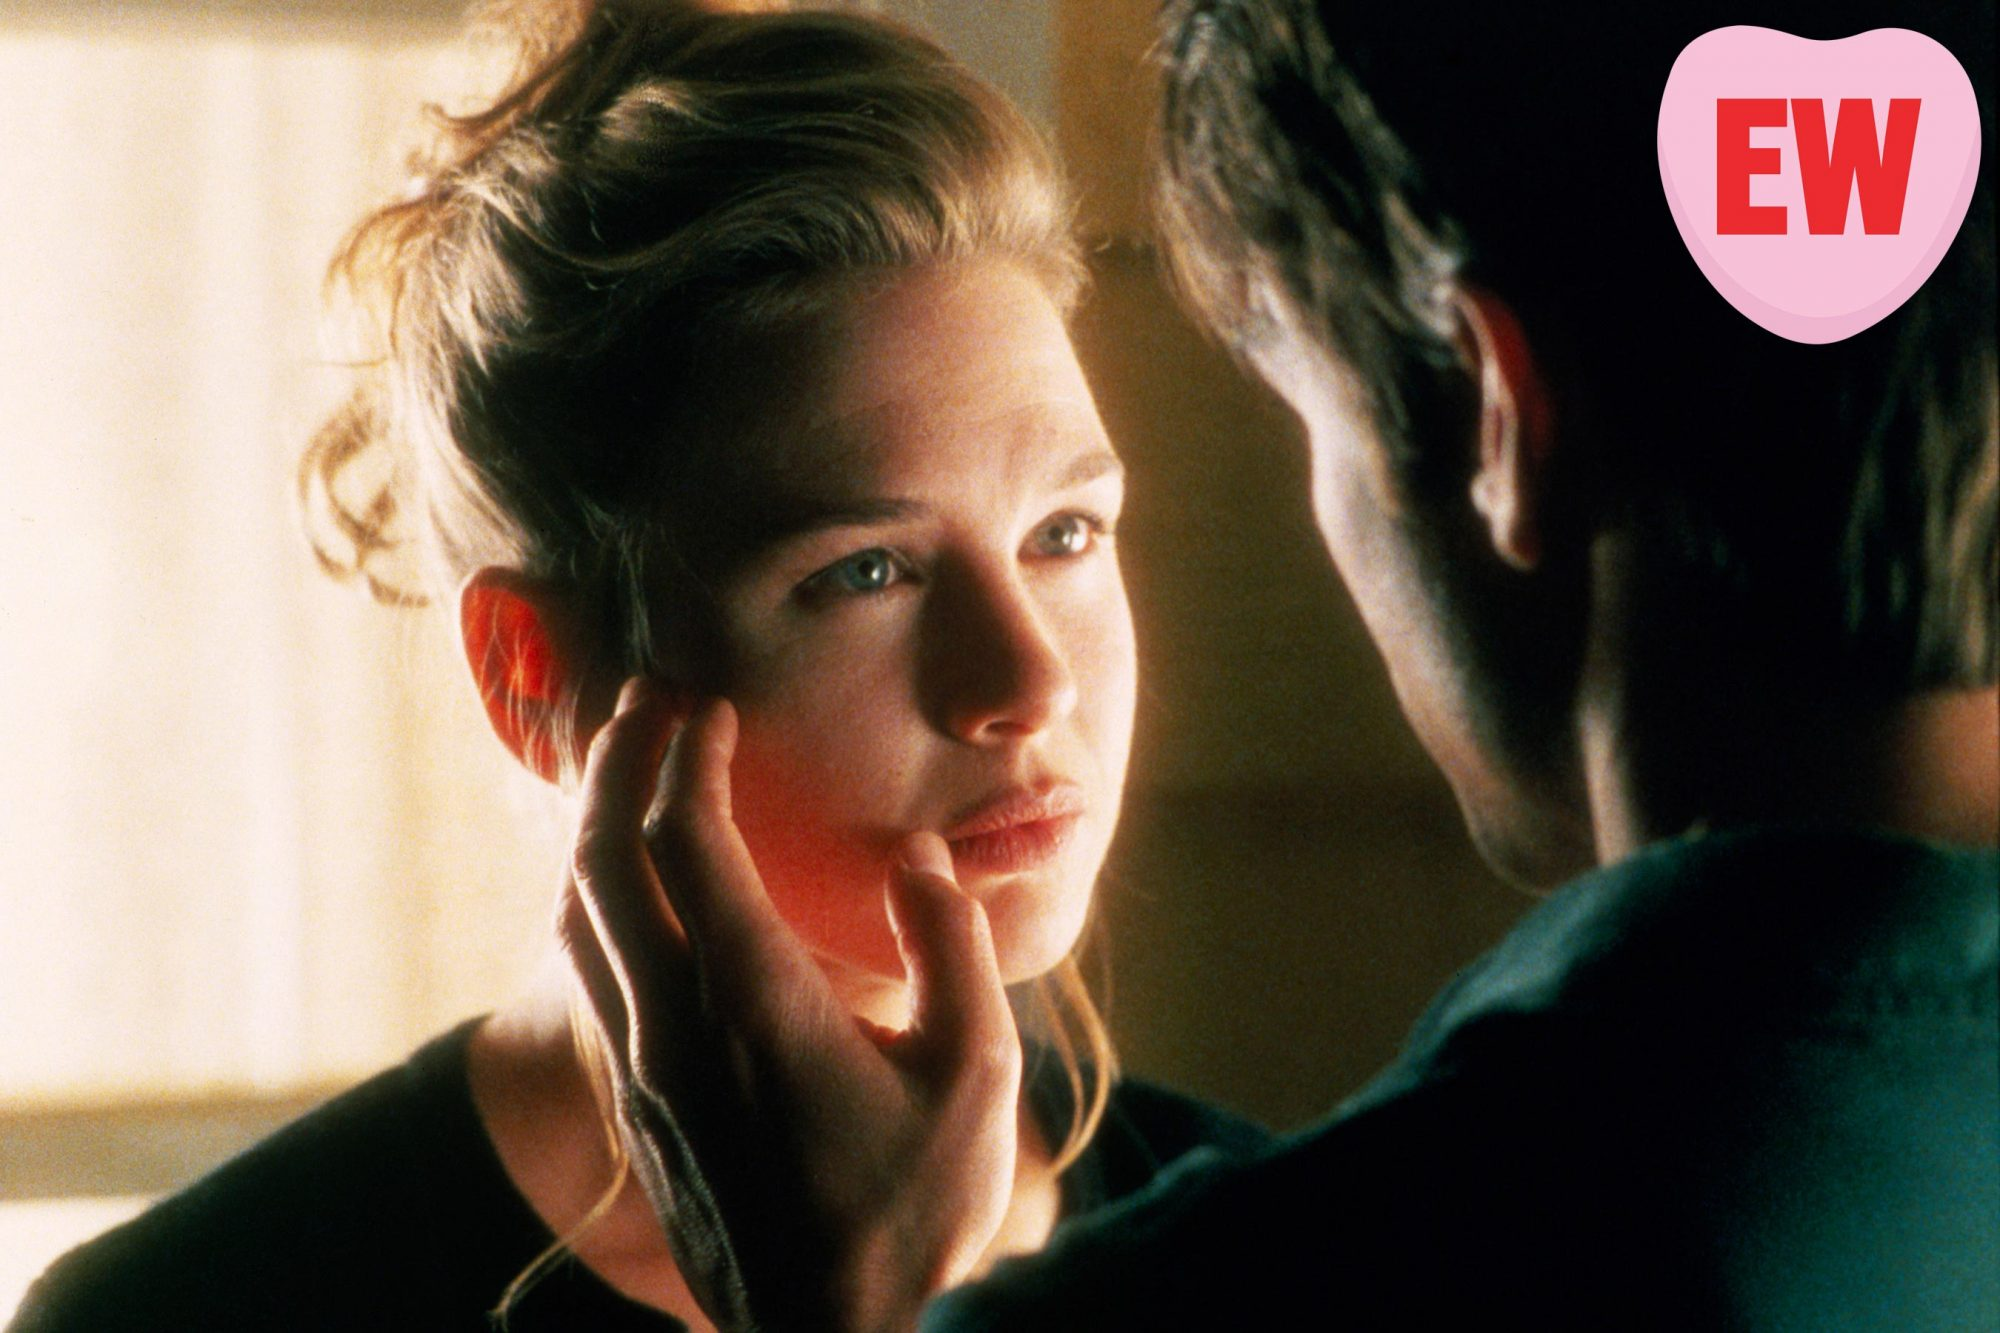 JERRY MAGUIRE, Renee Zellweger, Tom Cruise, 1996, (c) TriStar/courtesy Everett Collection